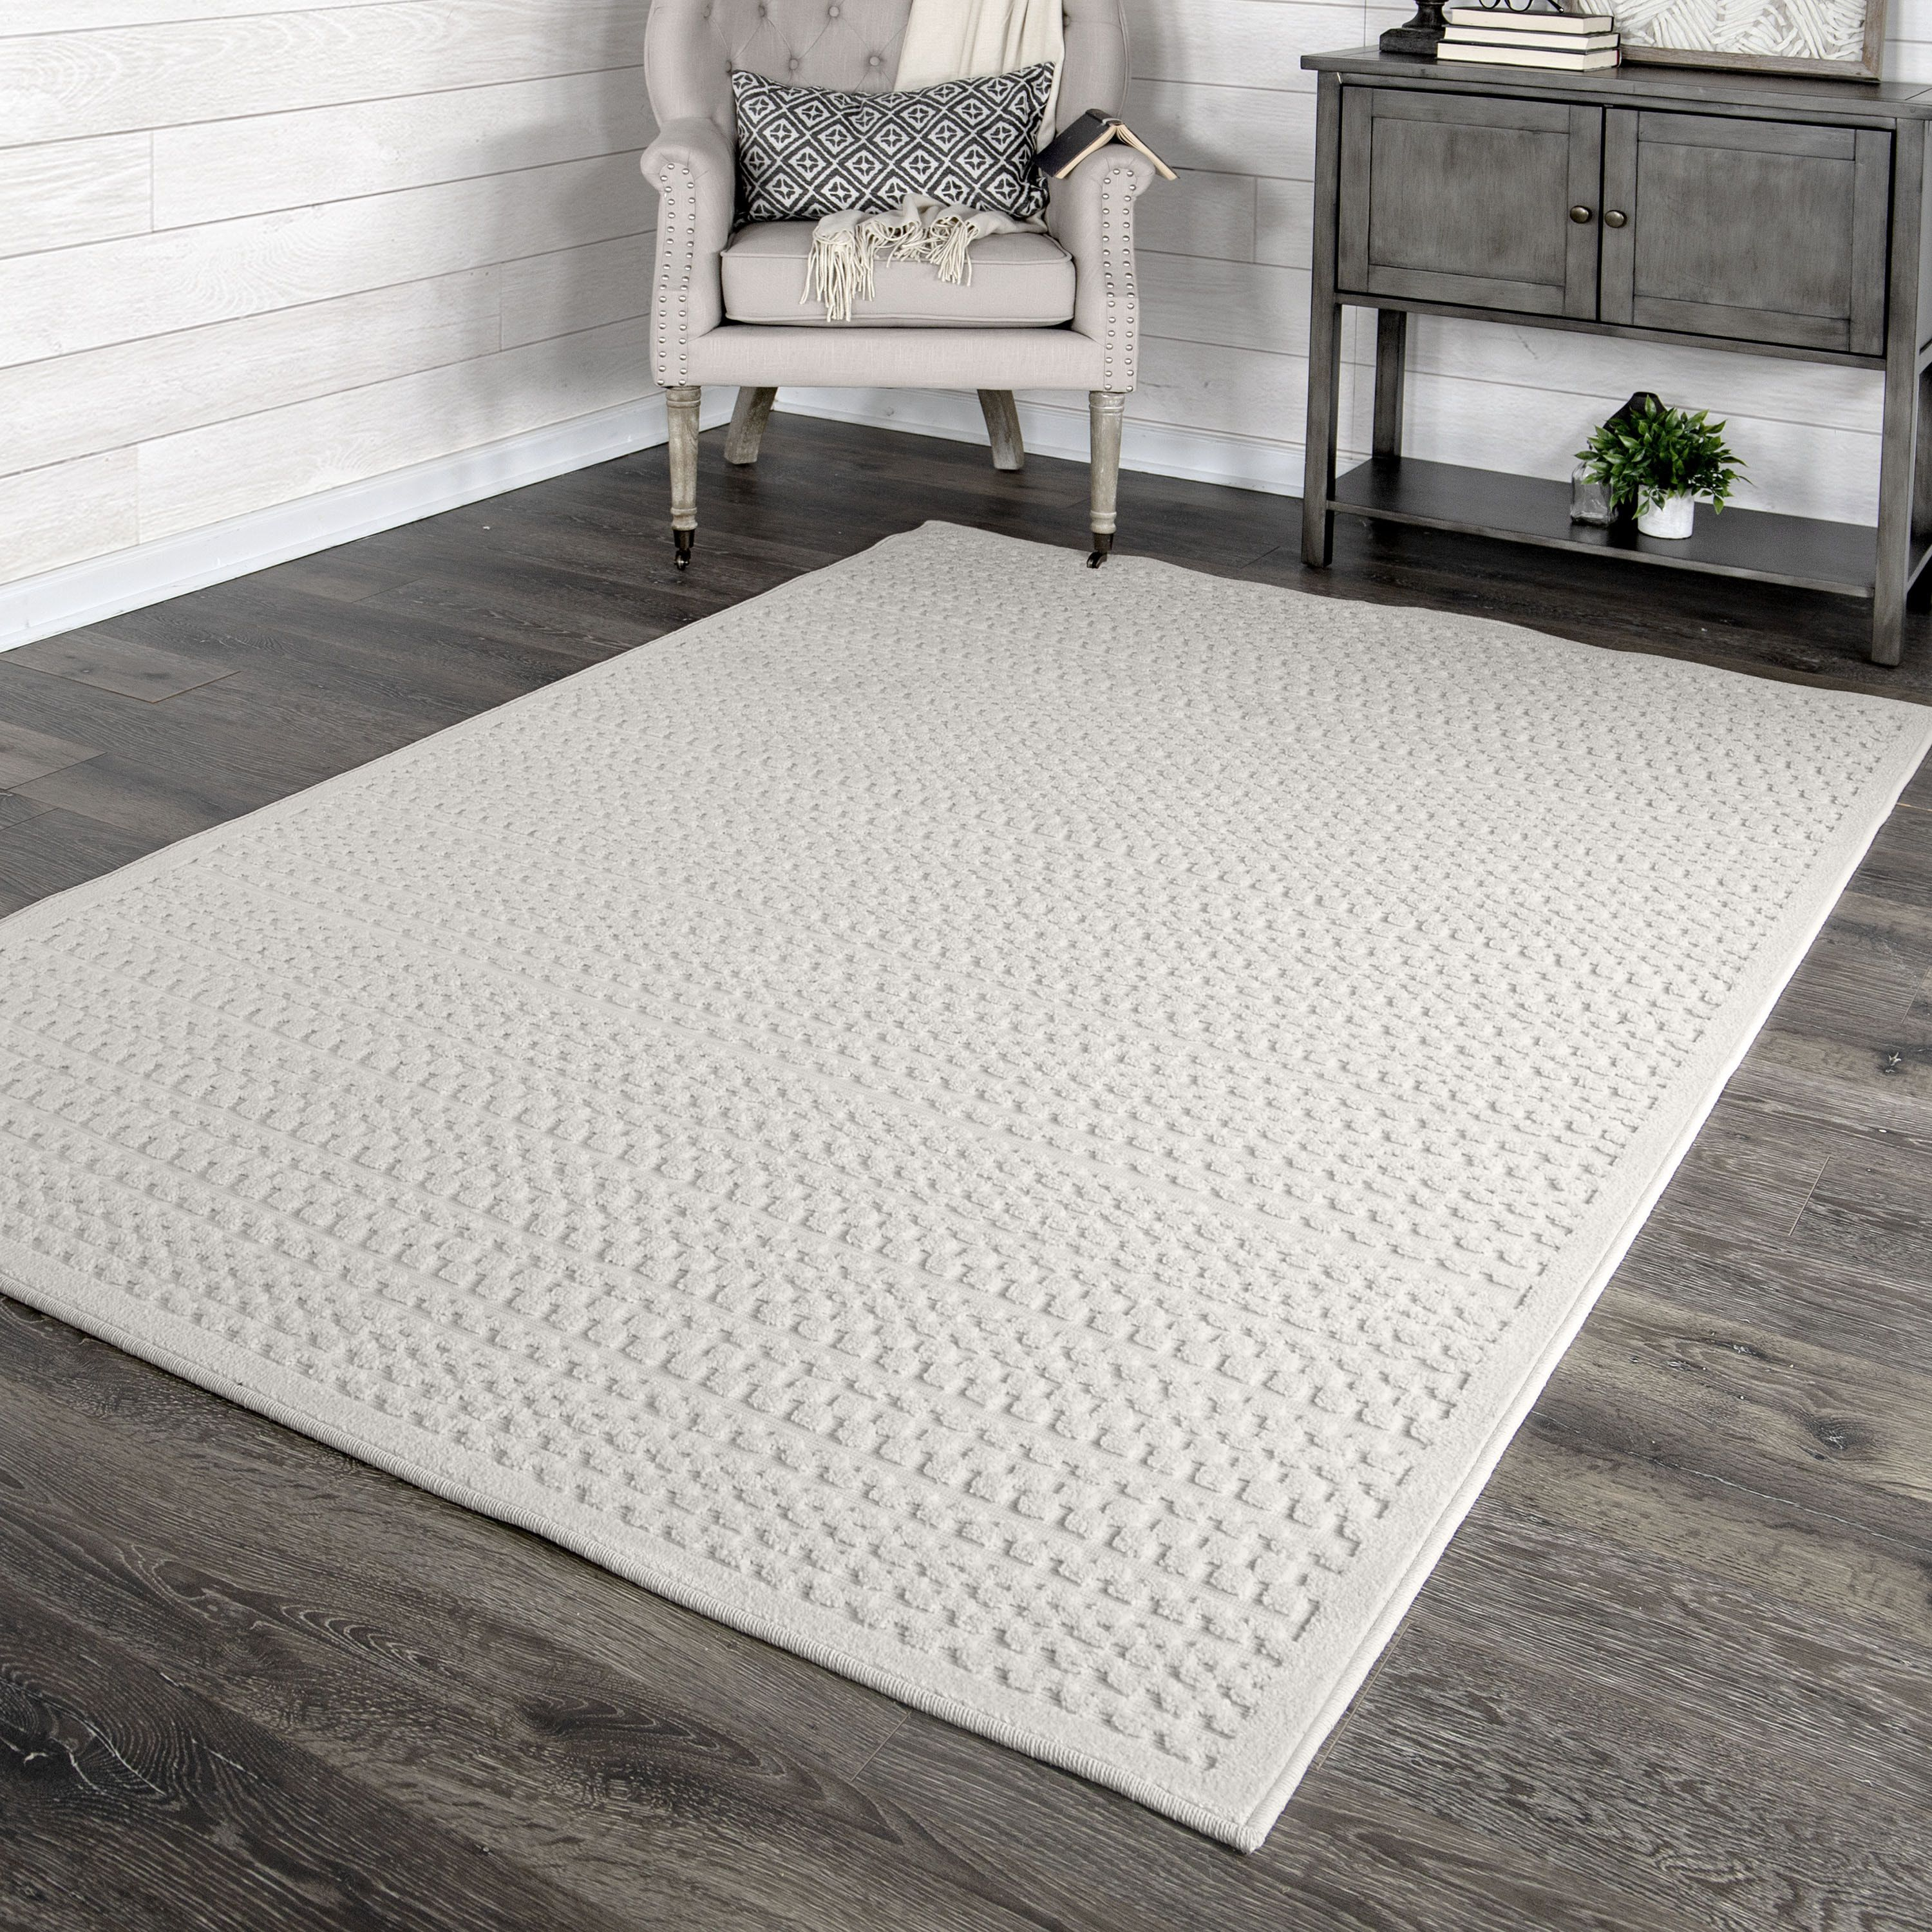 Aegean Rug Color Off White White Size 7 9 X 10 10 In 2020 Living Room Area Rugs Natural Area Rugs Farmhouse Area Rugs